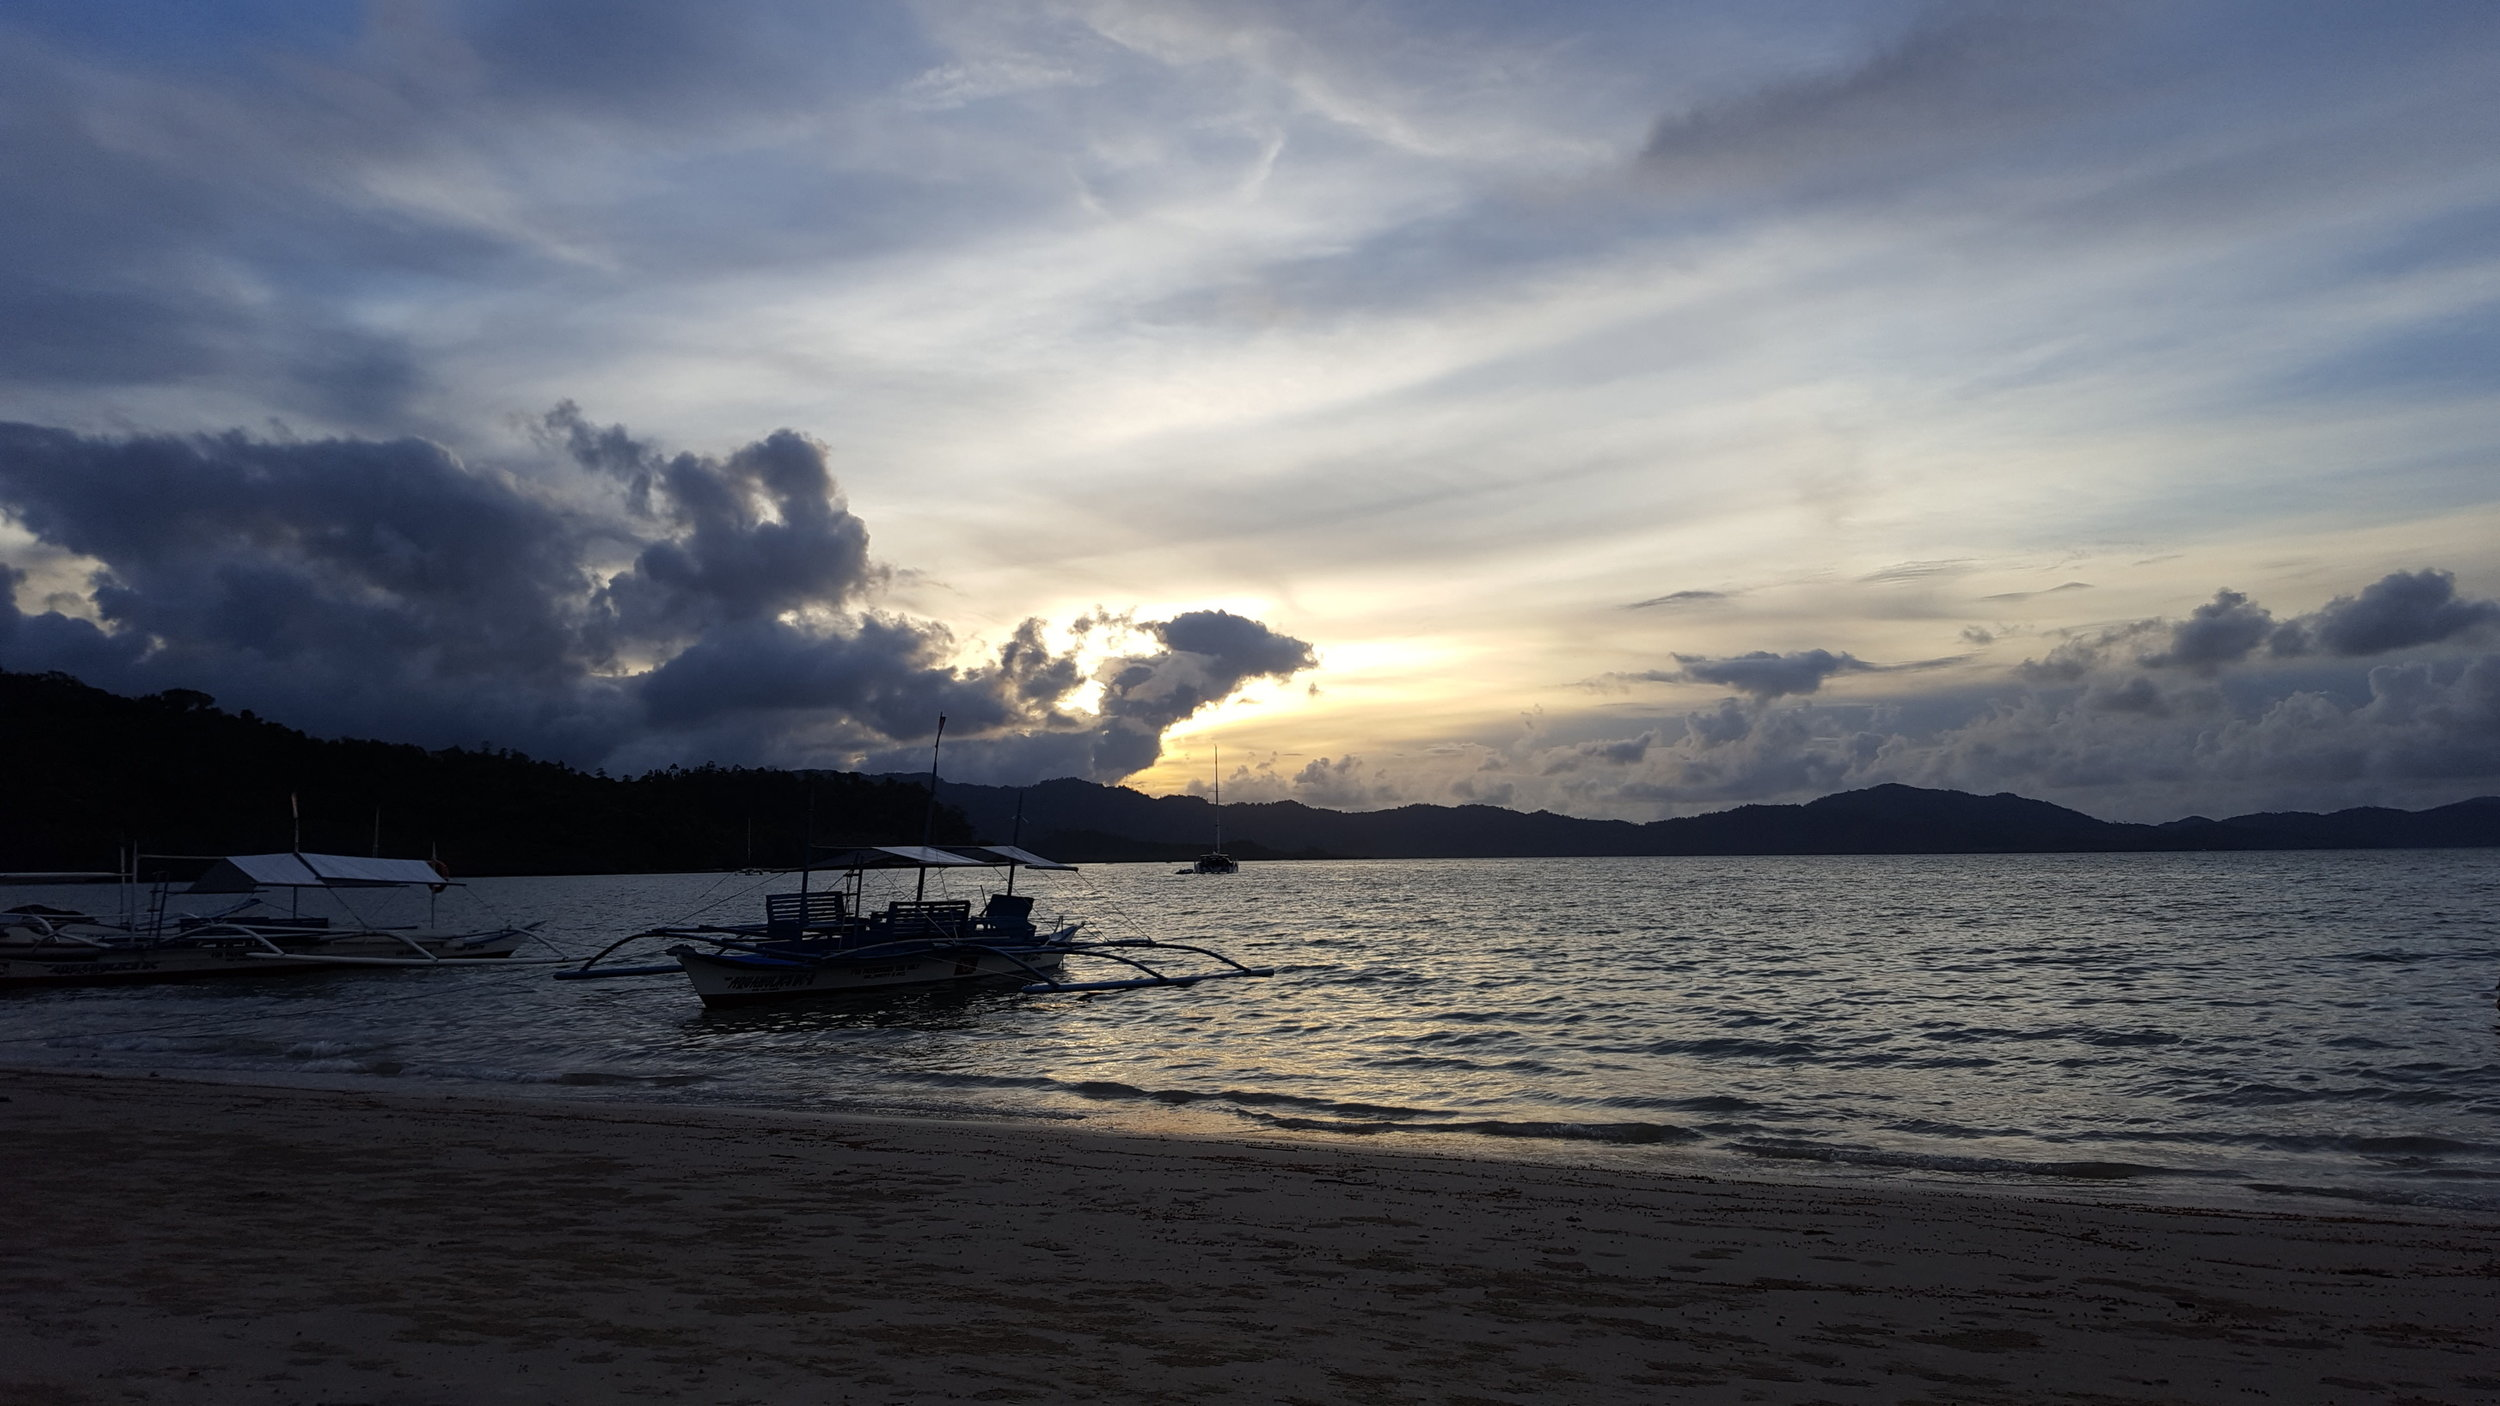 Port Barton was my final stop in the Philippines, and one of the most relaxing